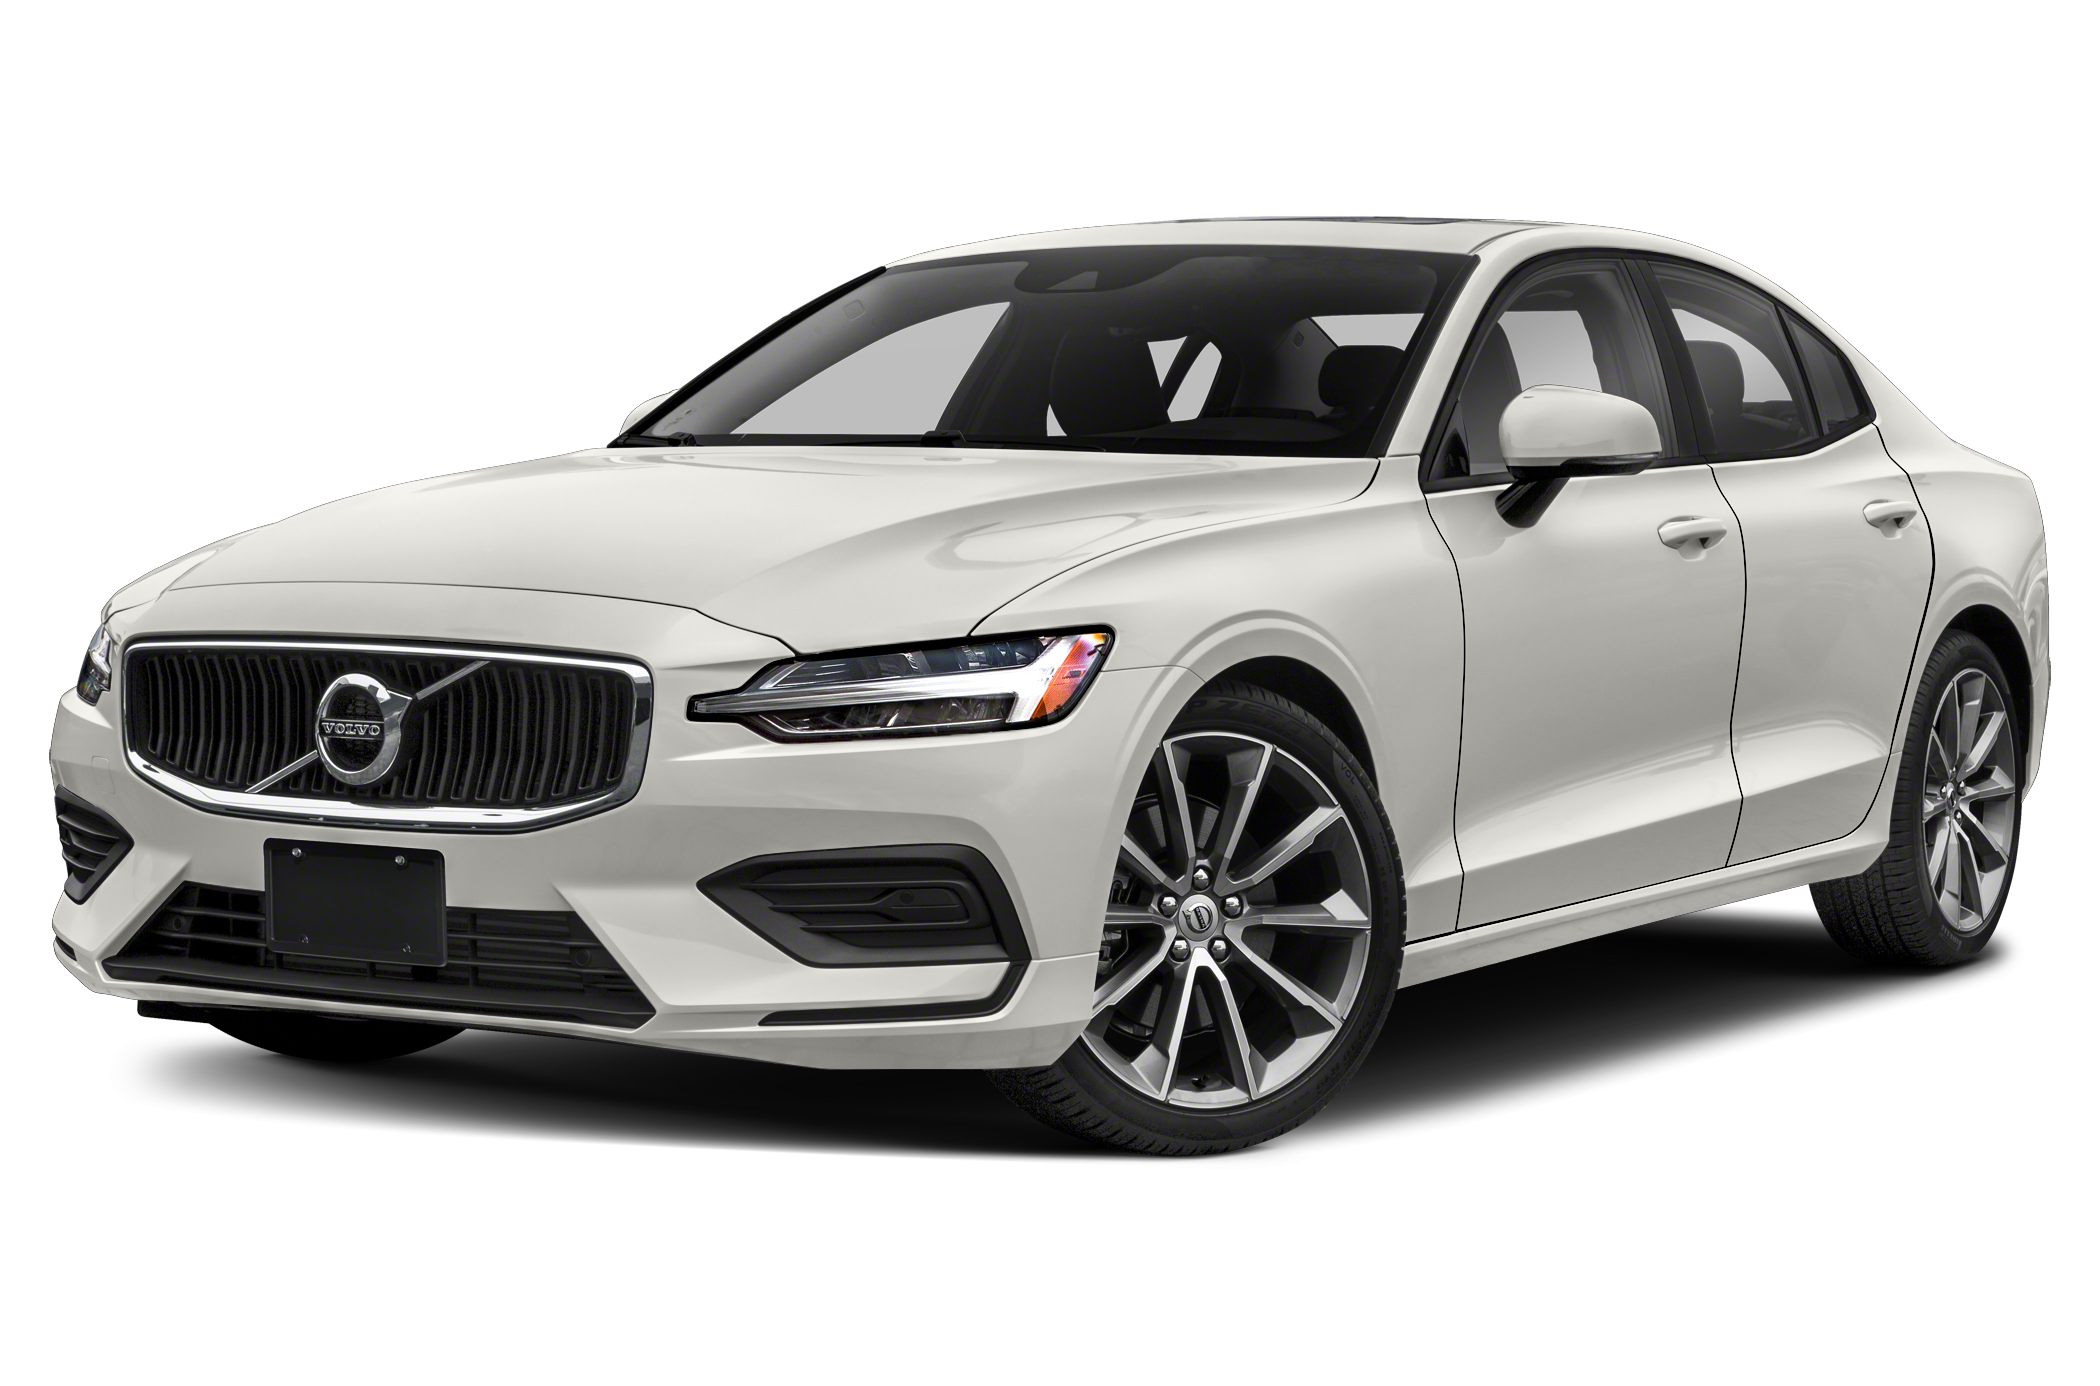 2020 Volvo S60 T6 Momentum 4dr All Wheel Drive Sedan Specs And Prices